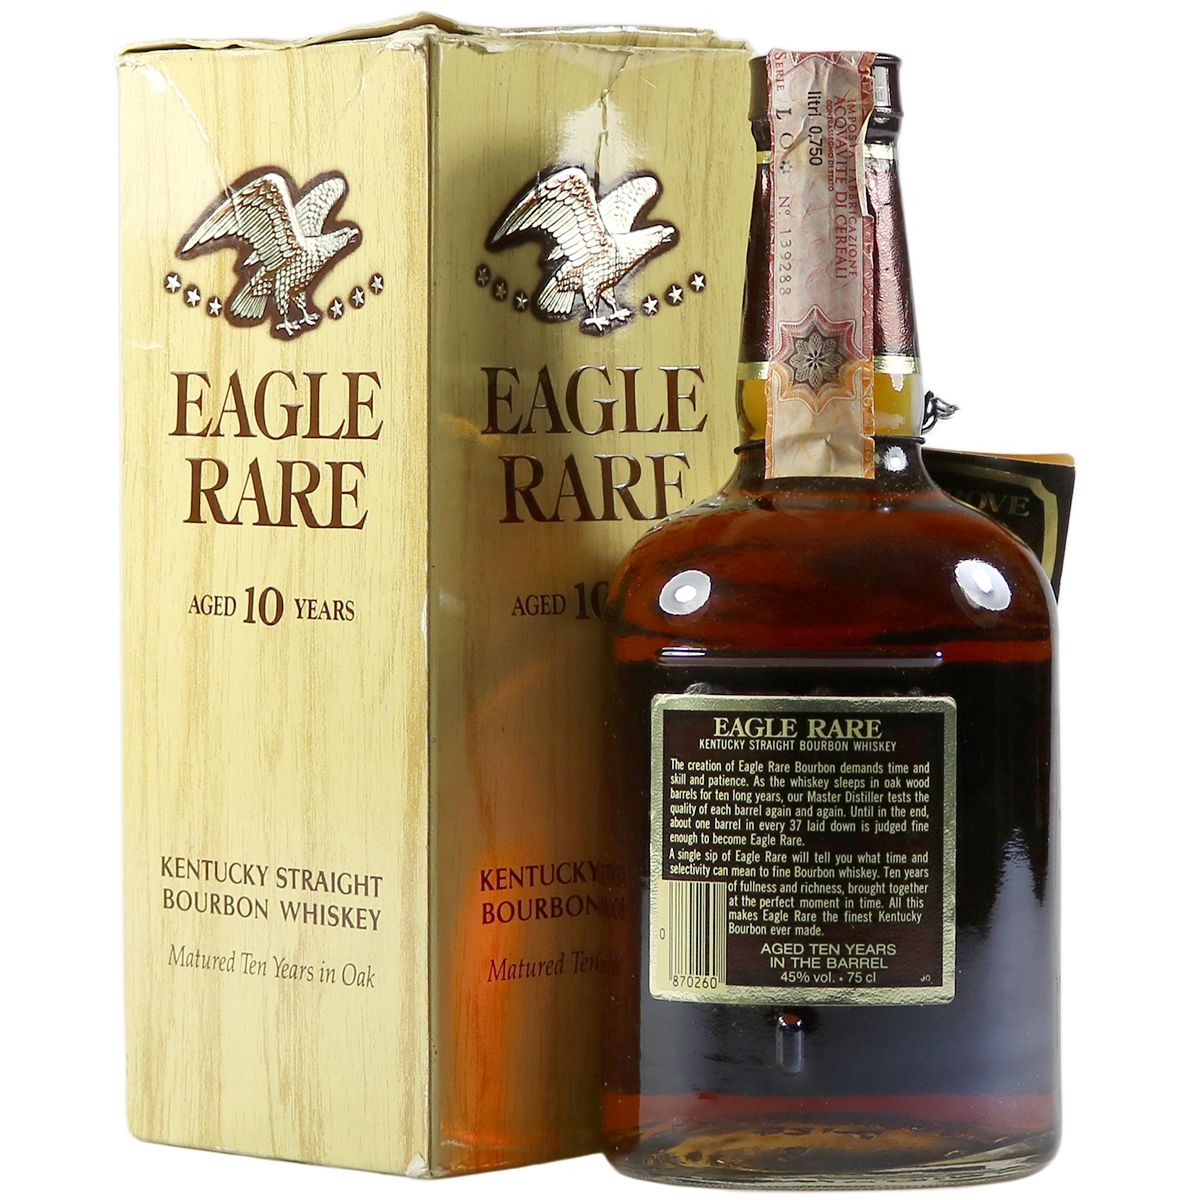 Eagle Rare 10 Year Bourbon whisky